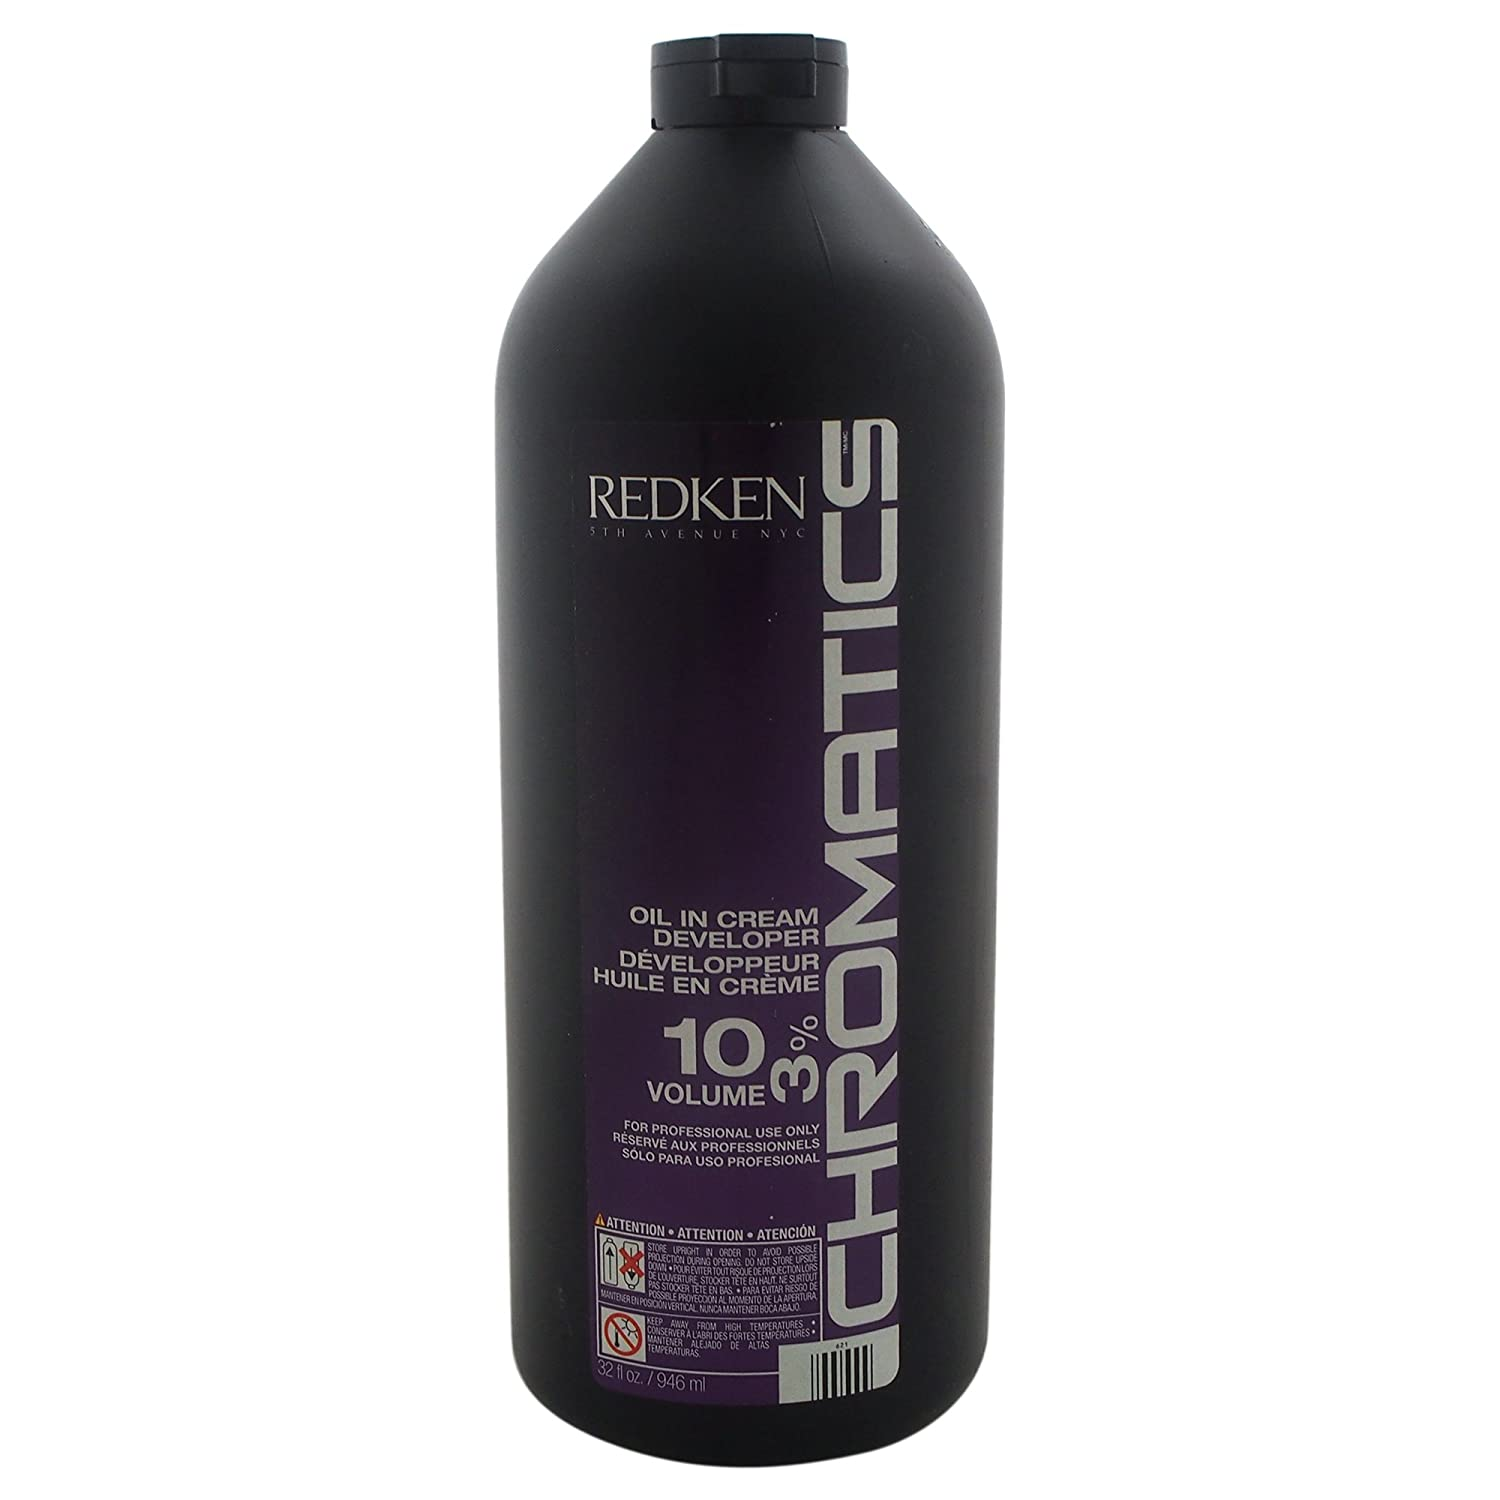 Redken Chromatics Oil in Cream Developer - 10 Volume / 3 % - 33.8 oz